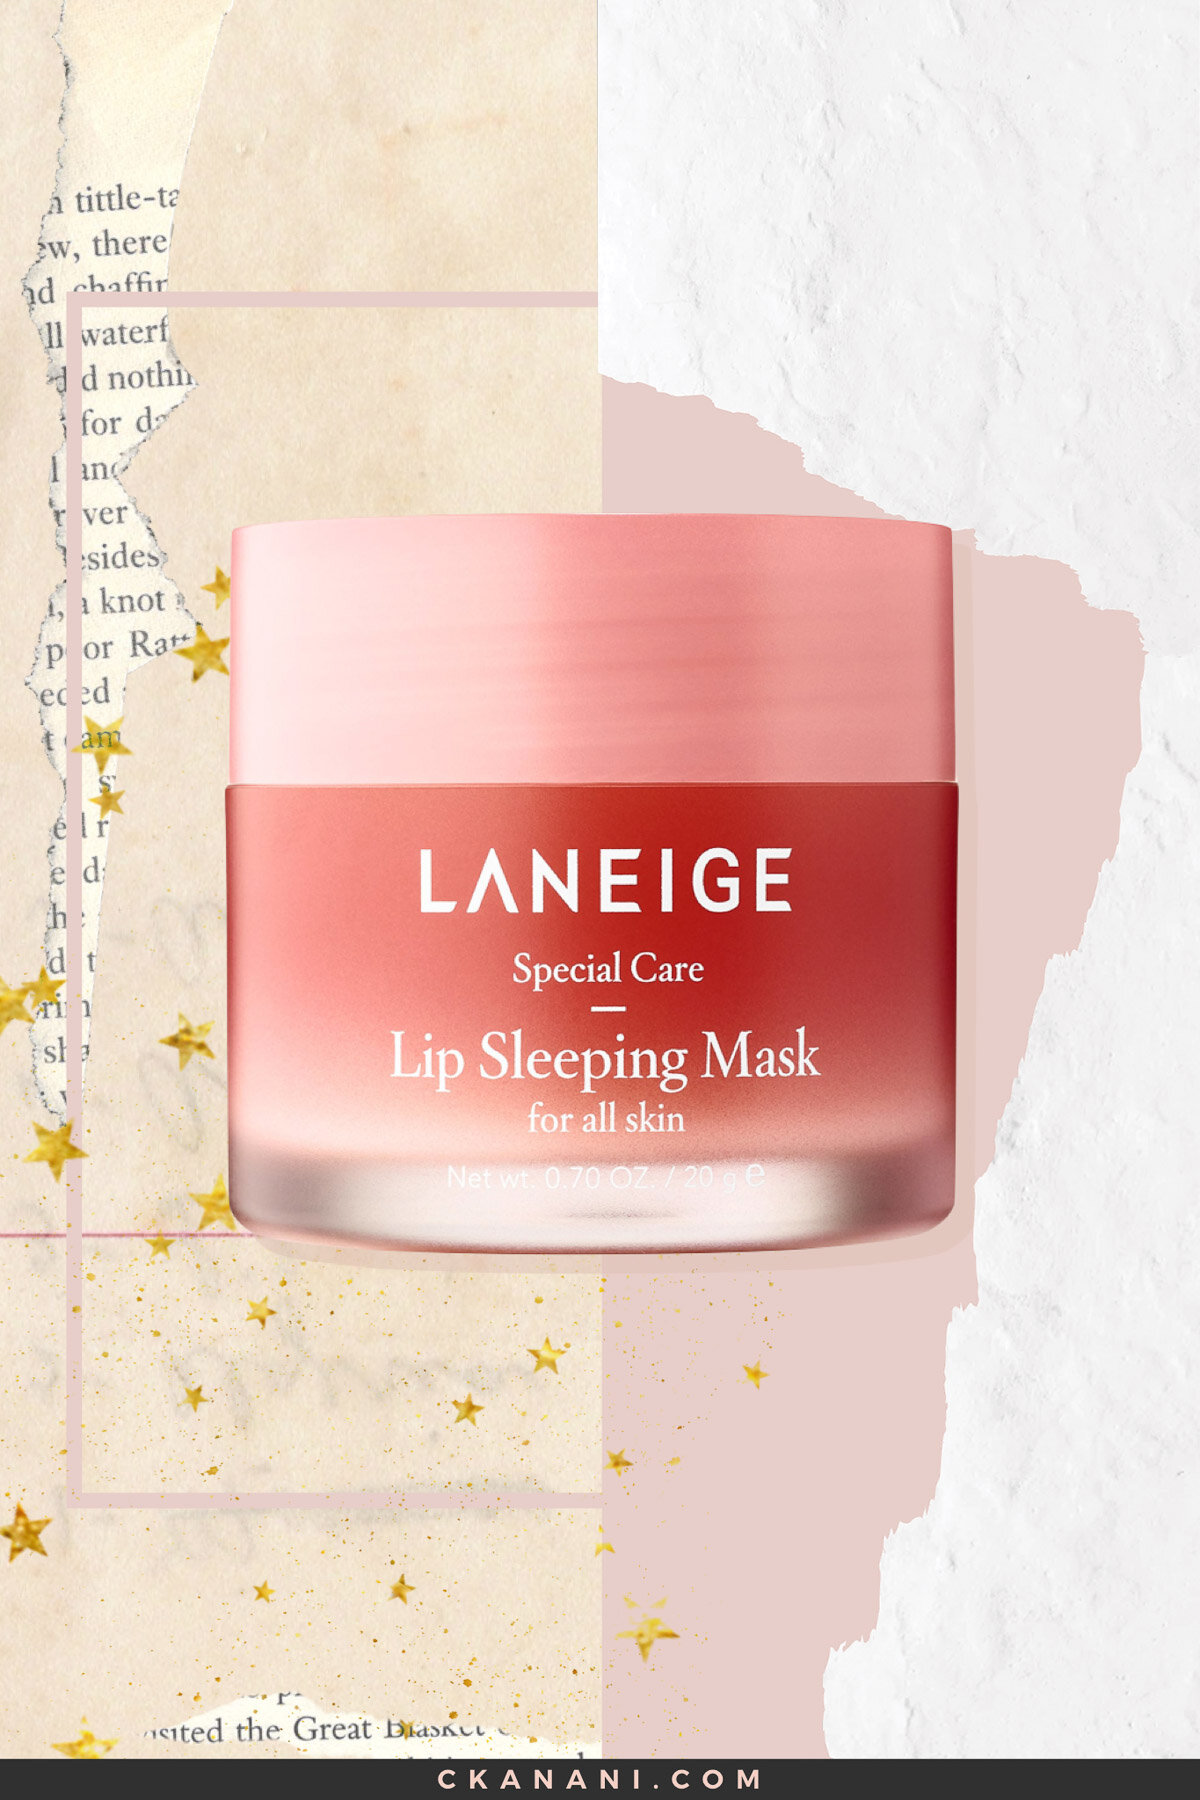 Laneige Lip Sleeping Mask: The Best Face Masks